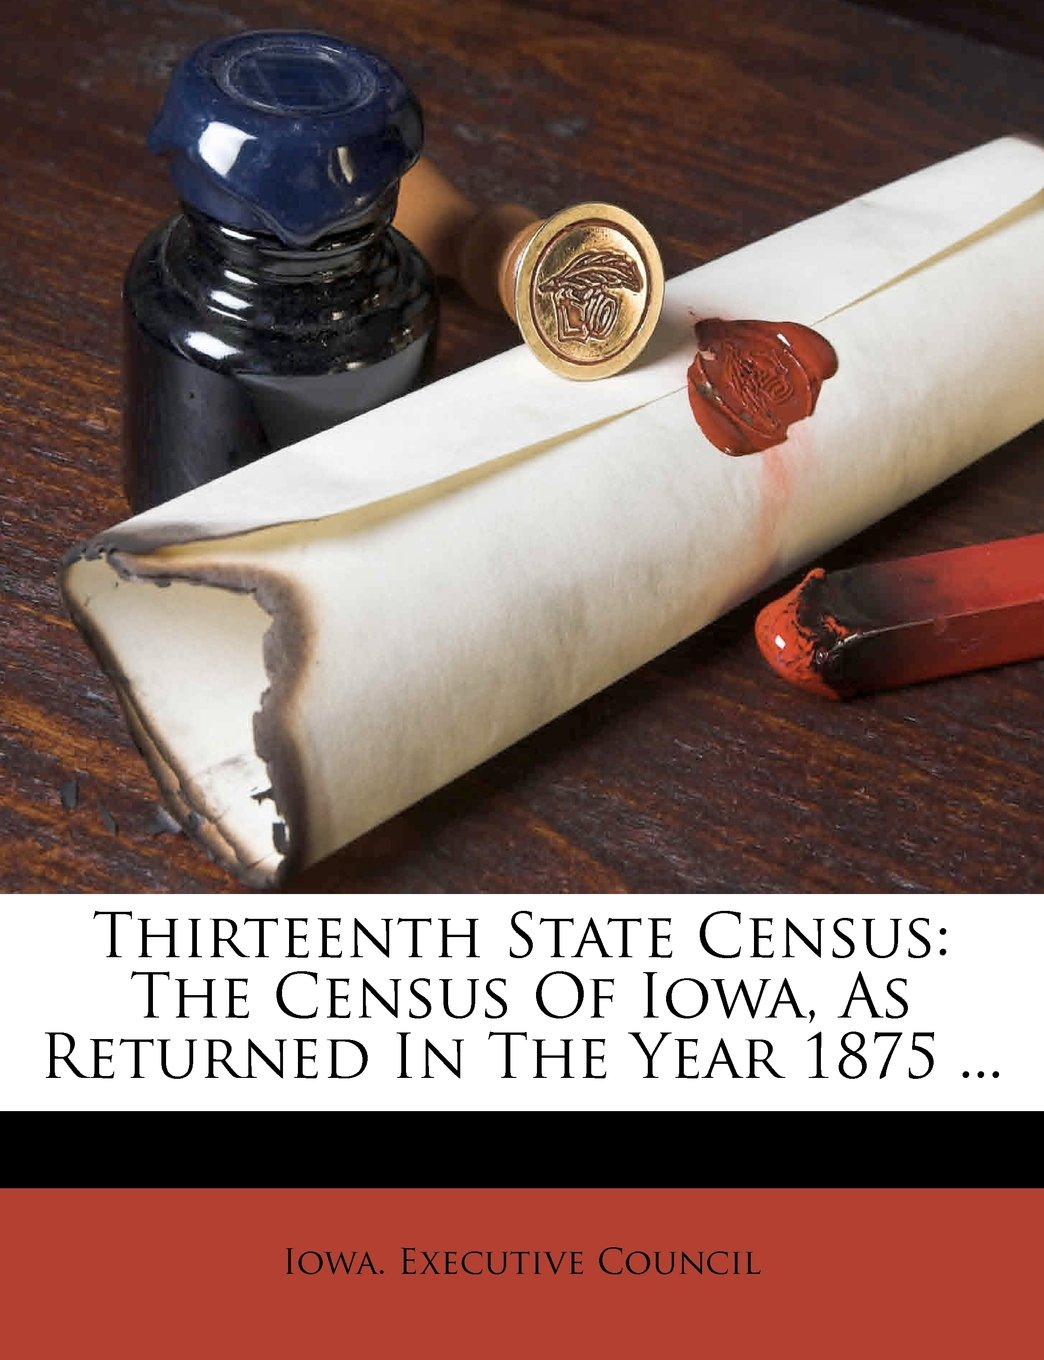 Thirteenth State Census: The Census Of Iowa, As Returned In The Year 1875 ... (Japanese Edition) ebook